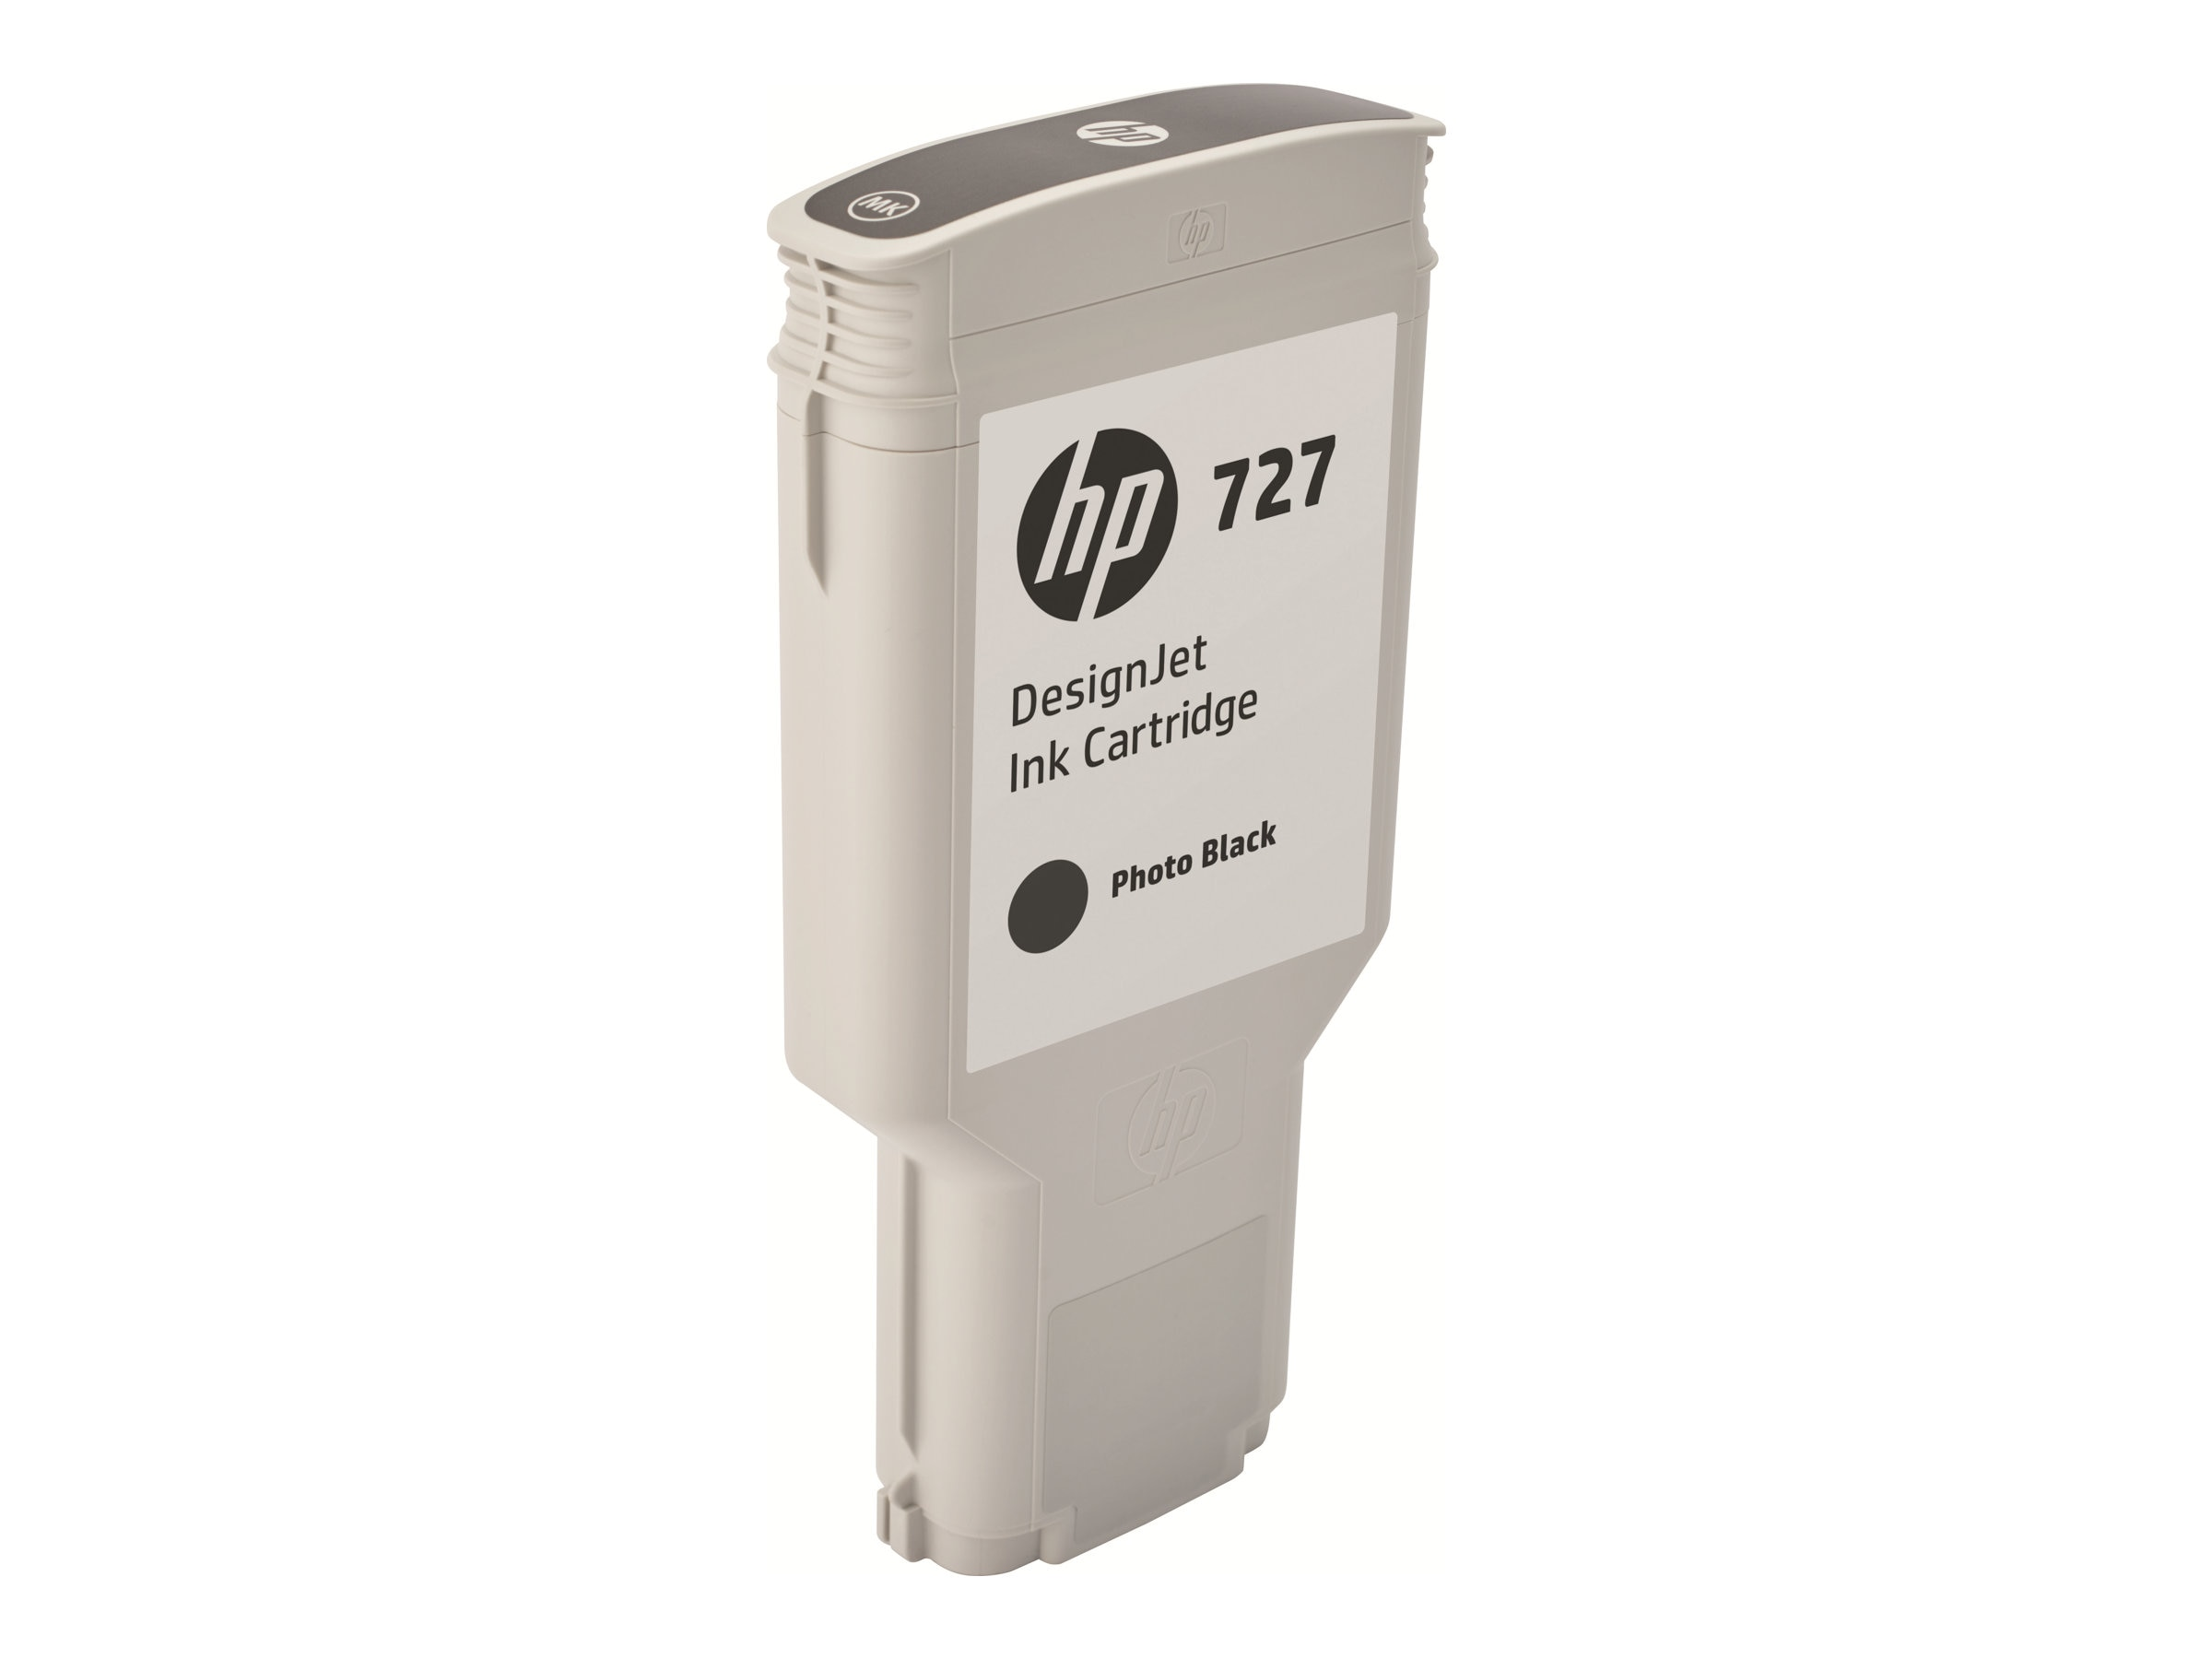 HP Inc. F9J79A Image 1